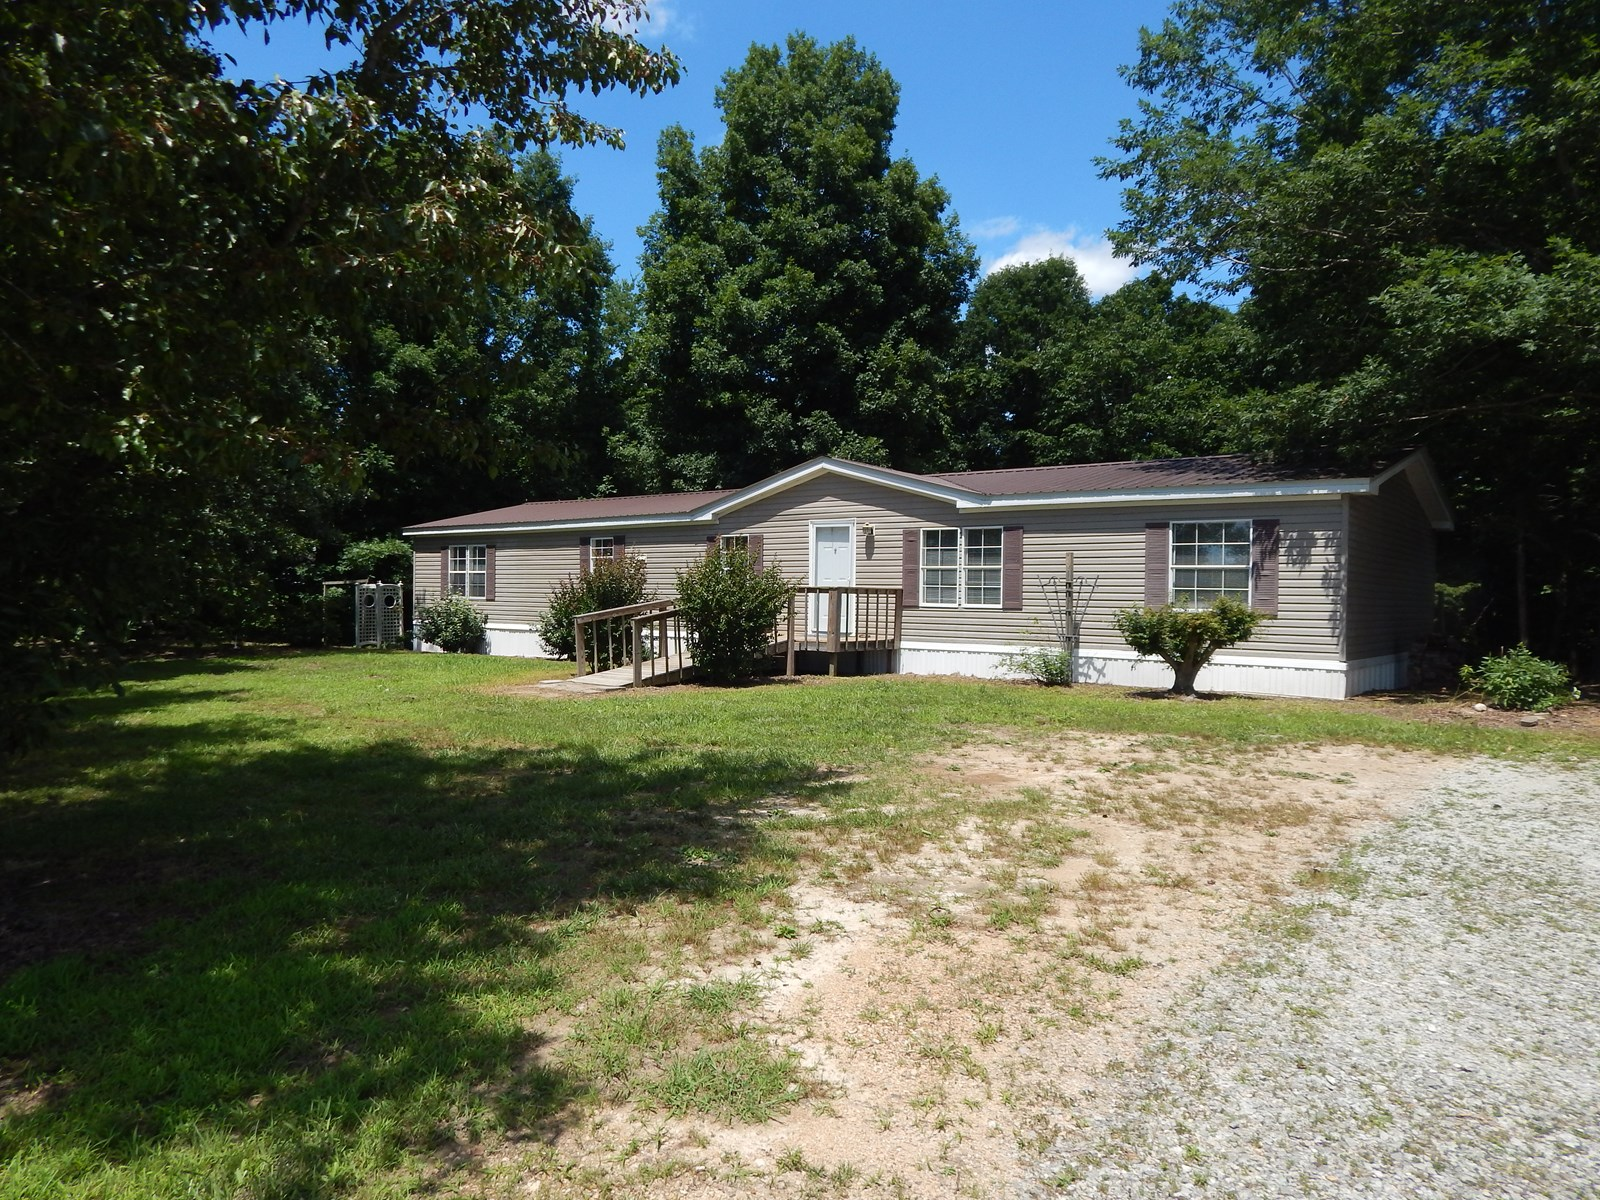 2 MOBILE HOMES ON 5.1 ACRES IN TN.!